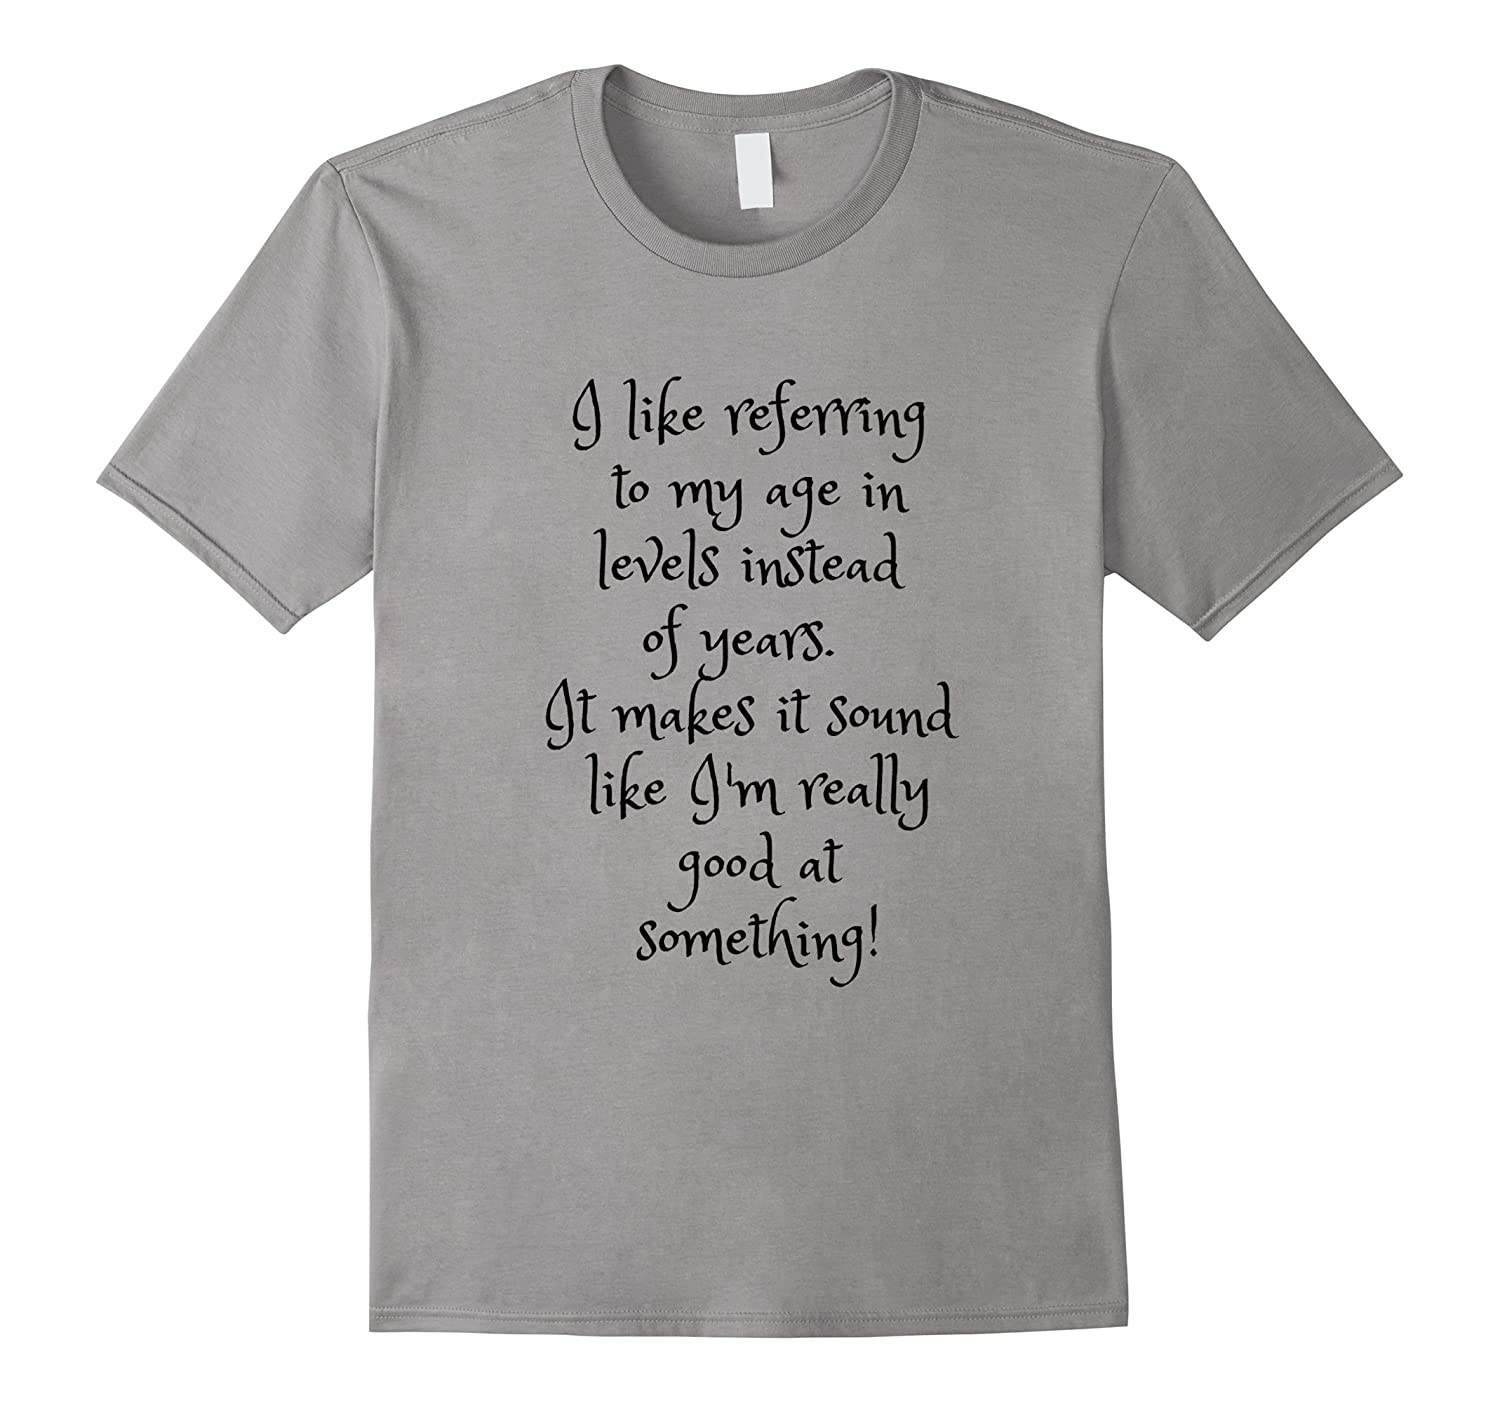 Funny Shirt about Aging Levels instead of years-T-Shirt